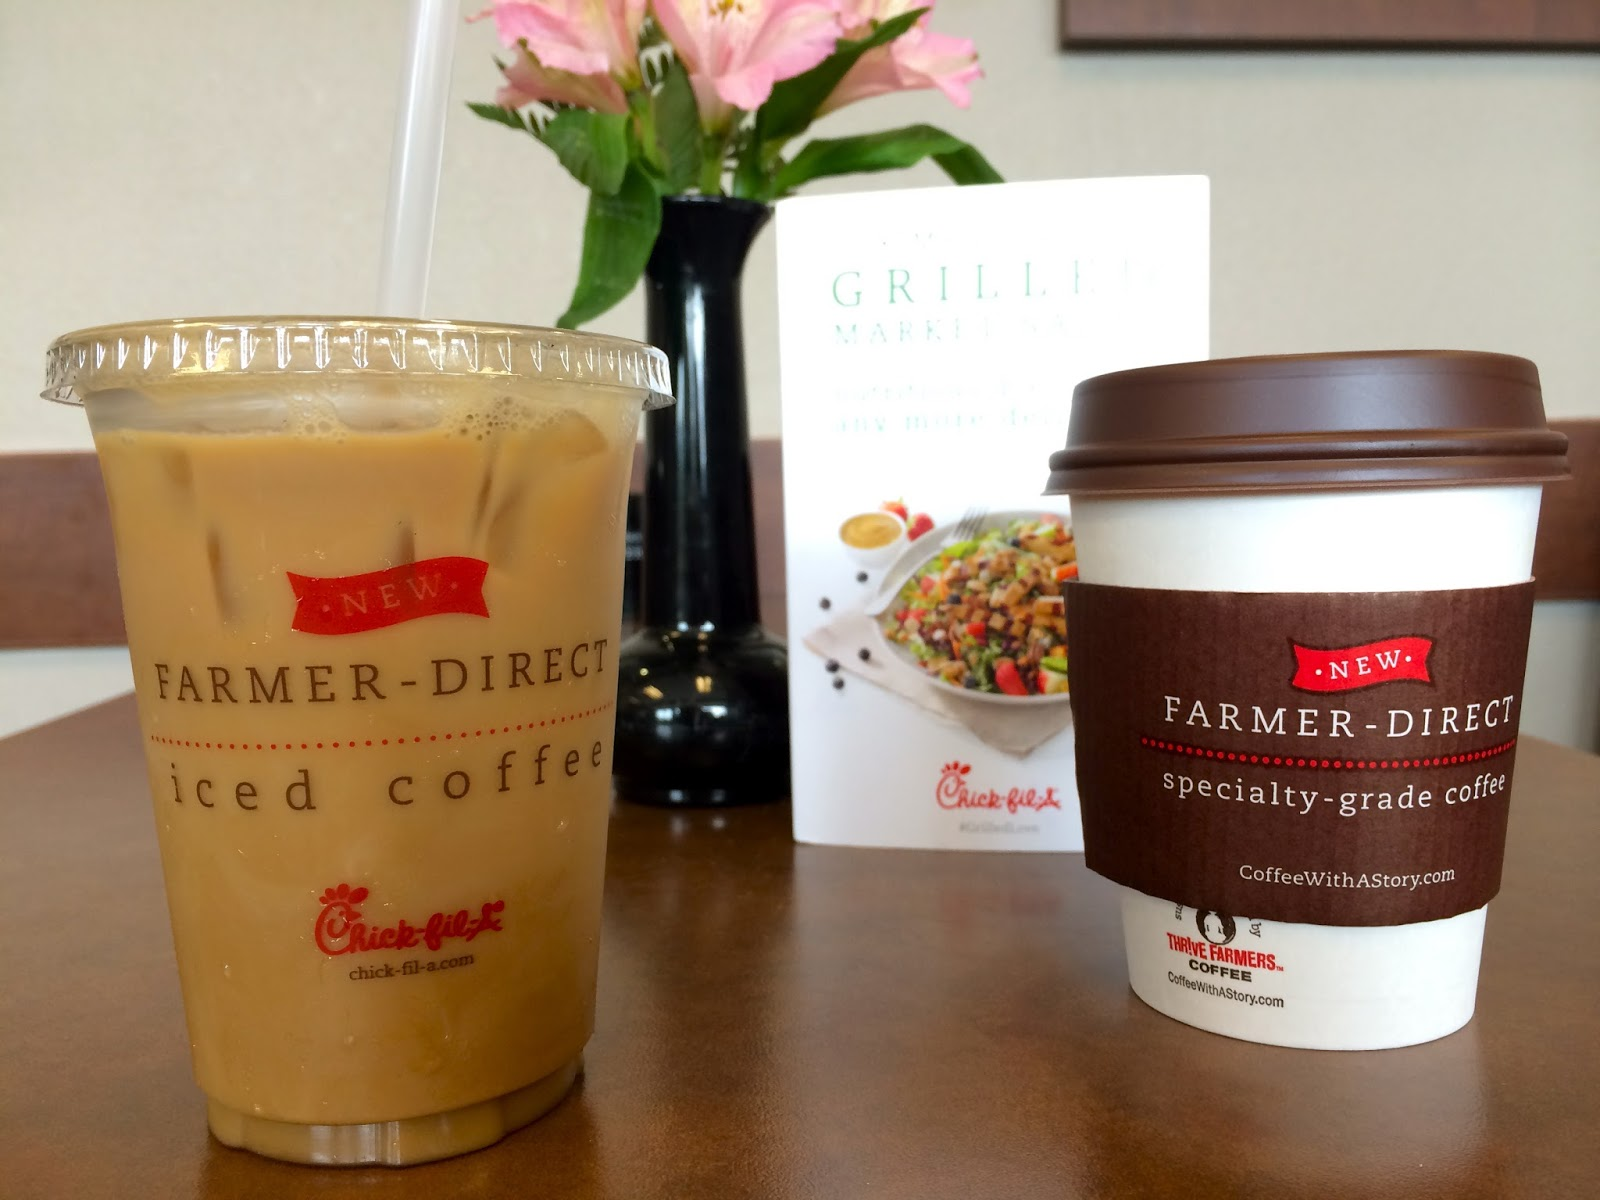 Chick-fil-A Hot and Iced Coffees are farmer direct and really tasty!